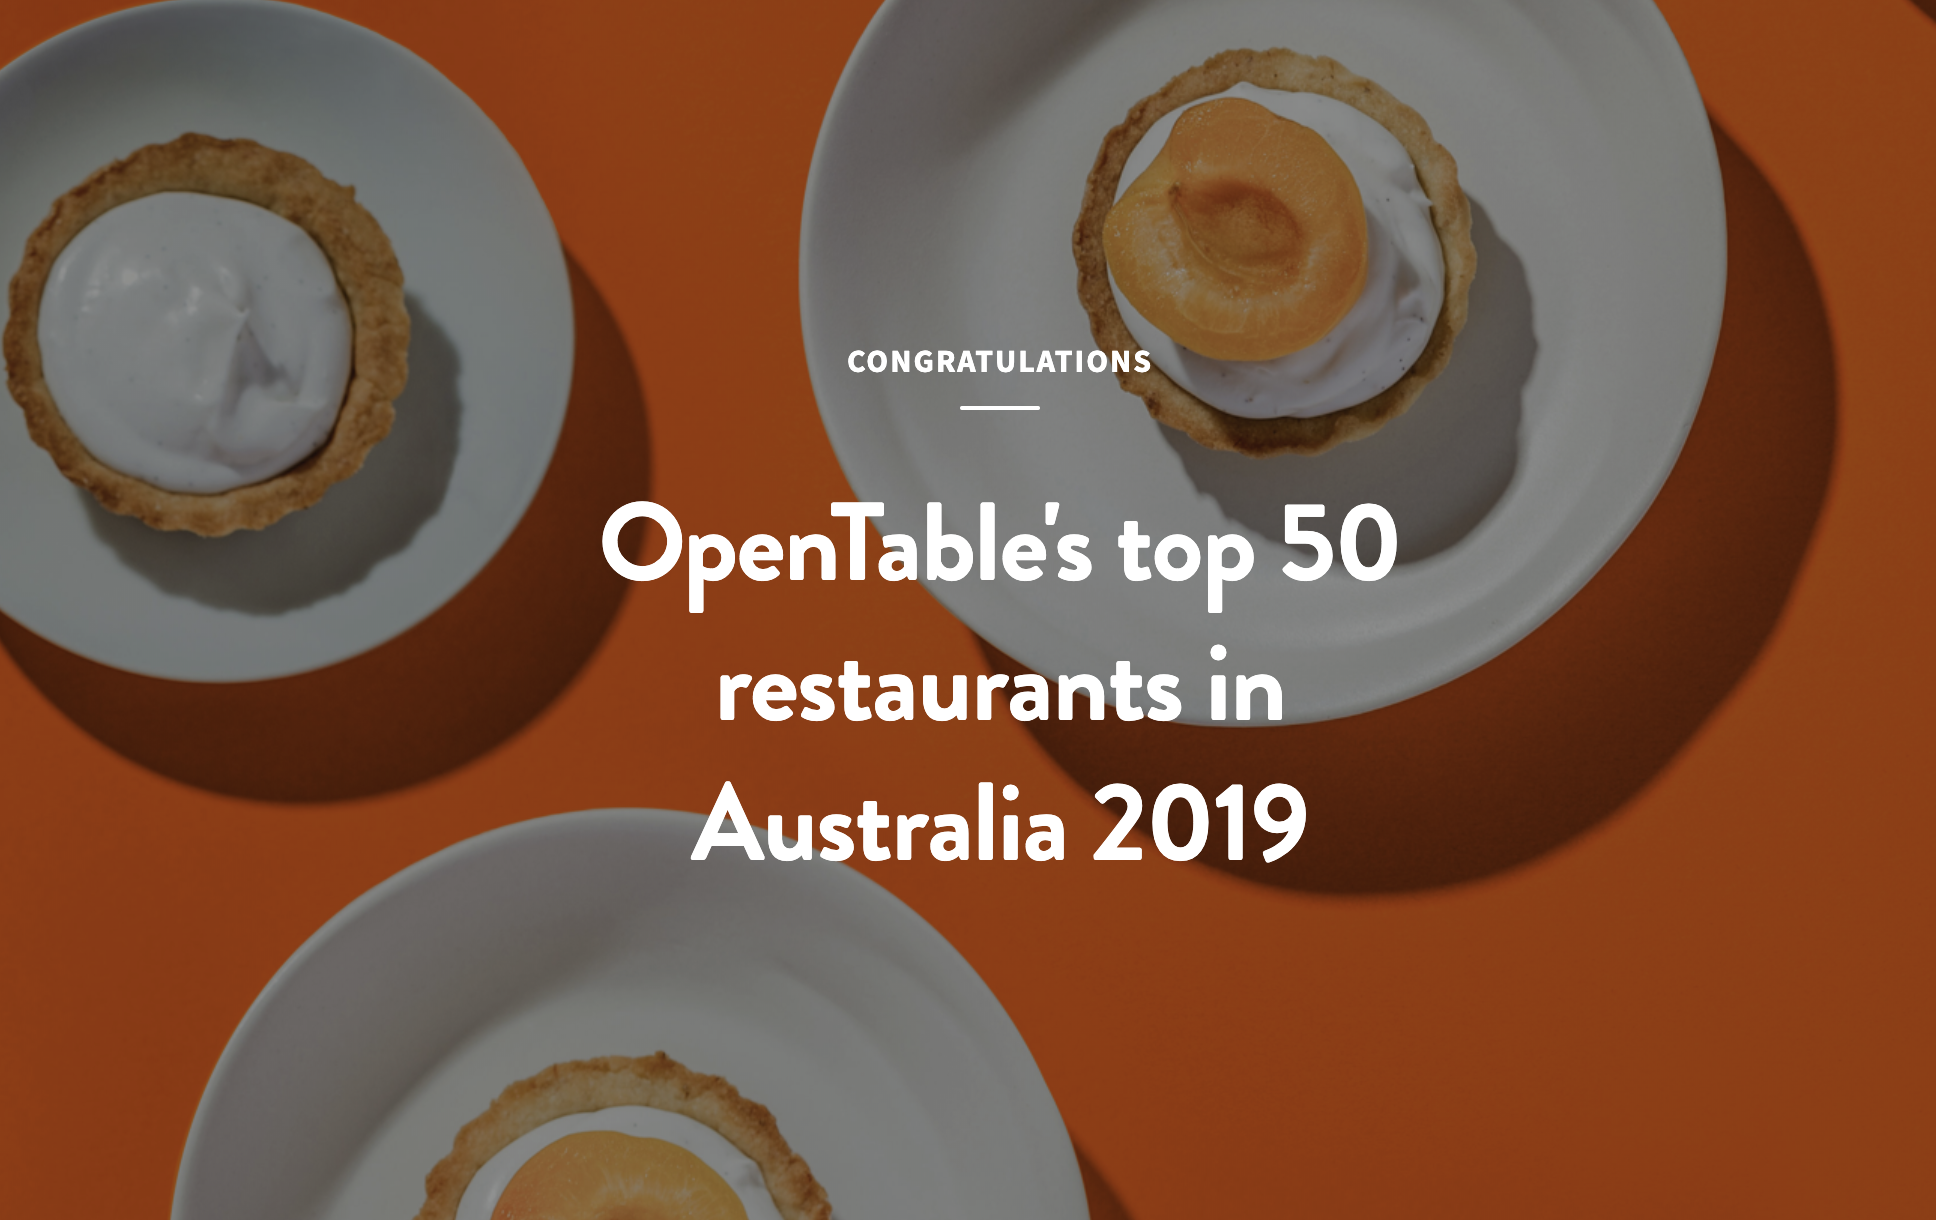 Tinamba Hotel named one of the top 50 restaurants in Australia for 2019!